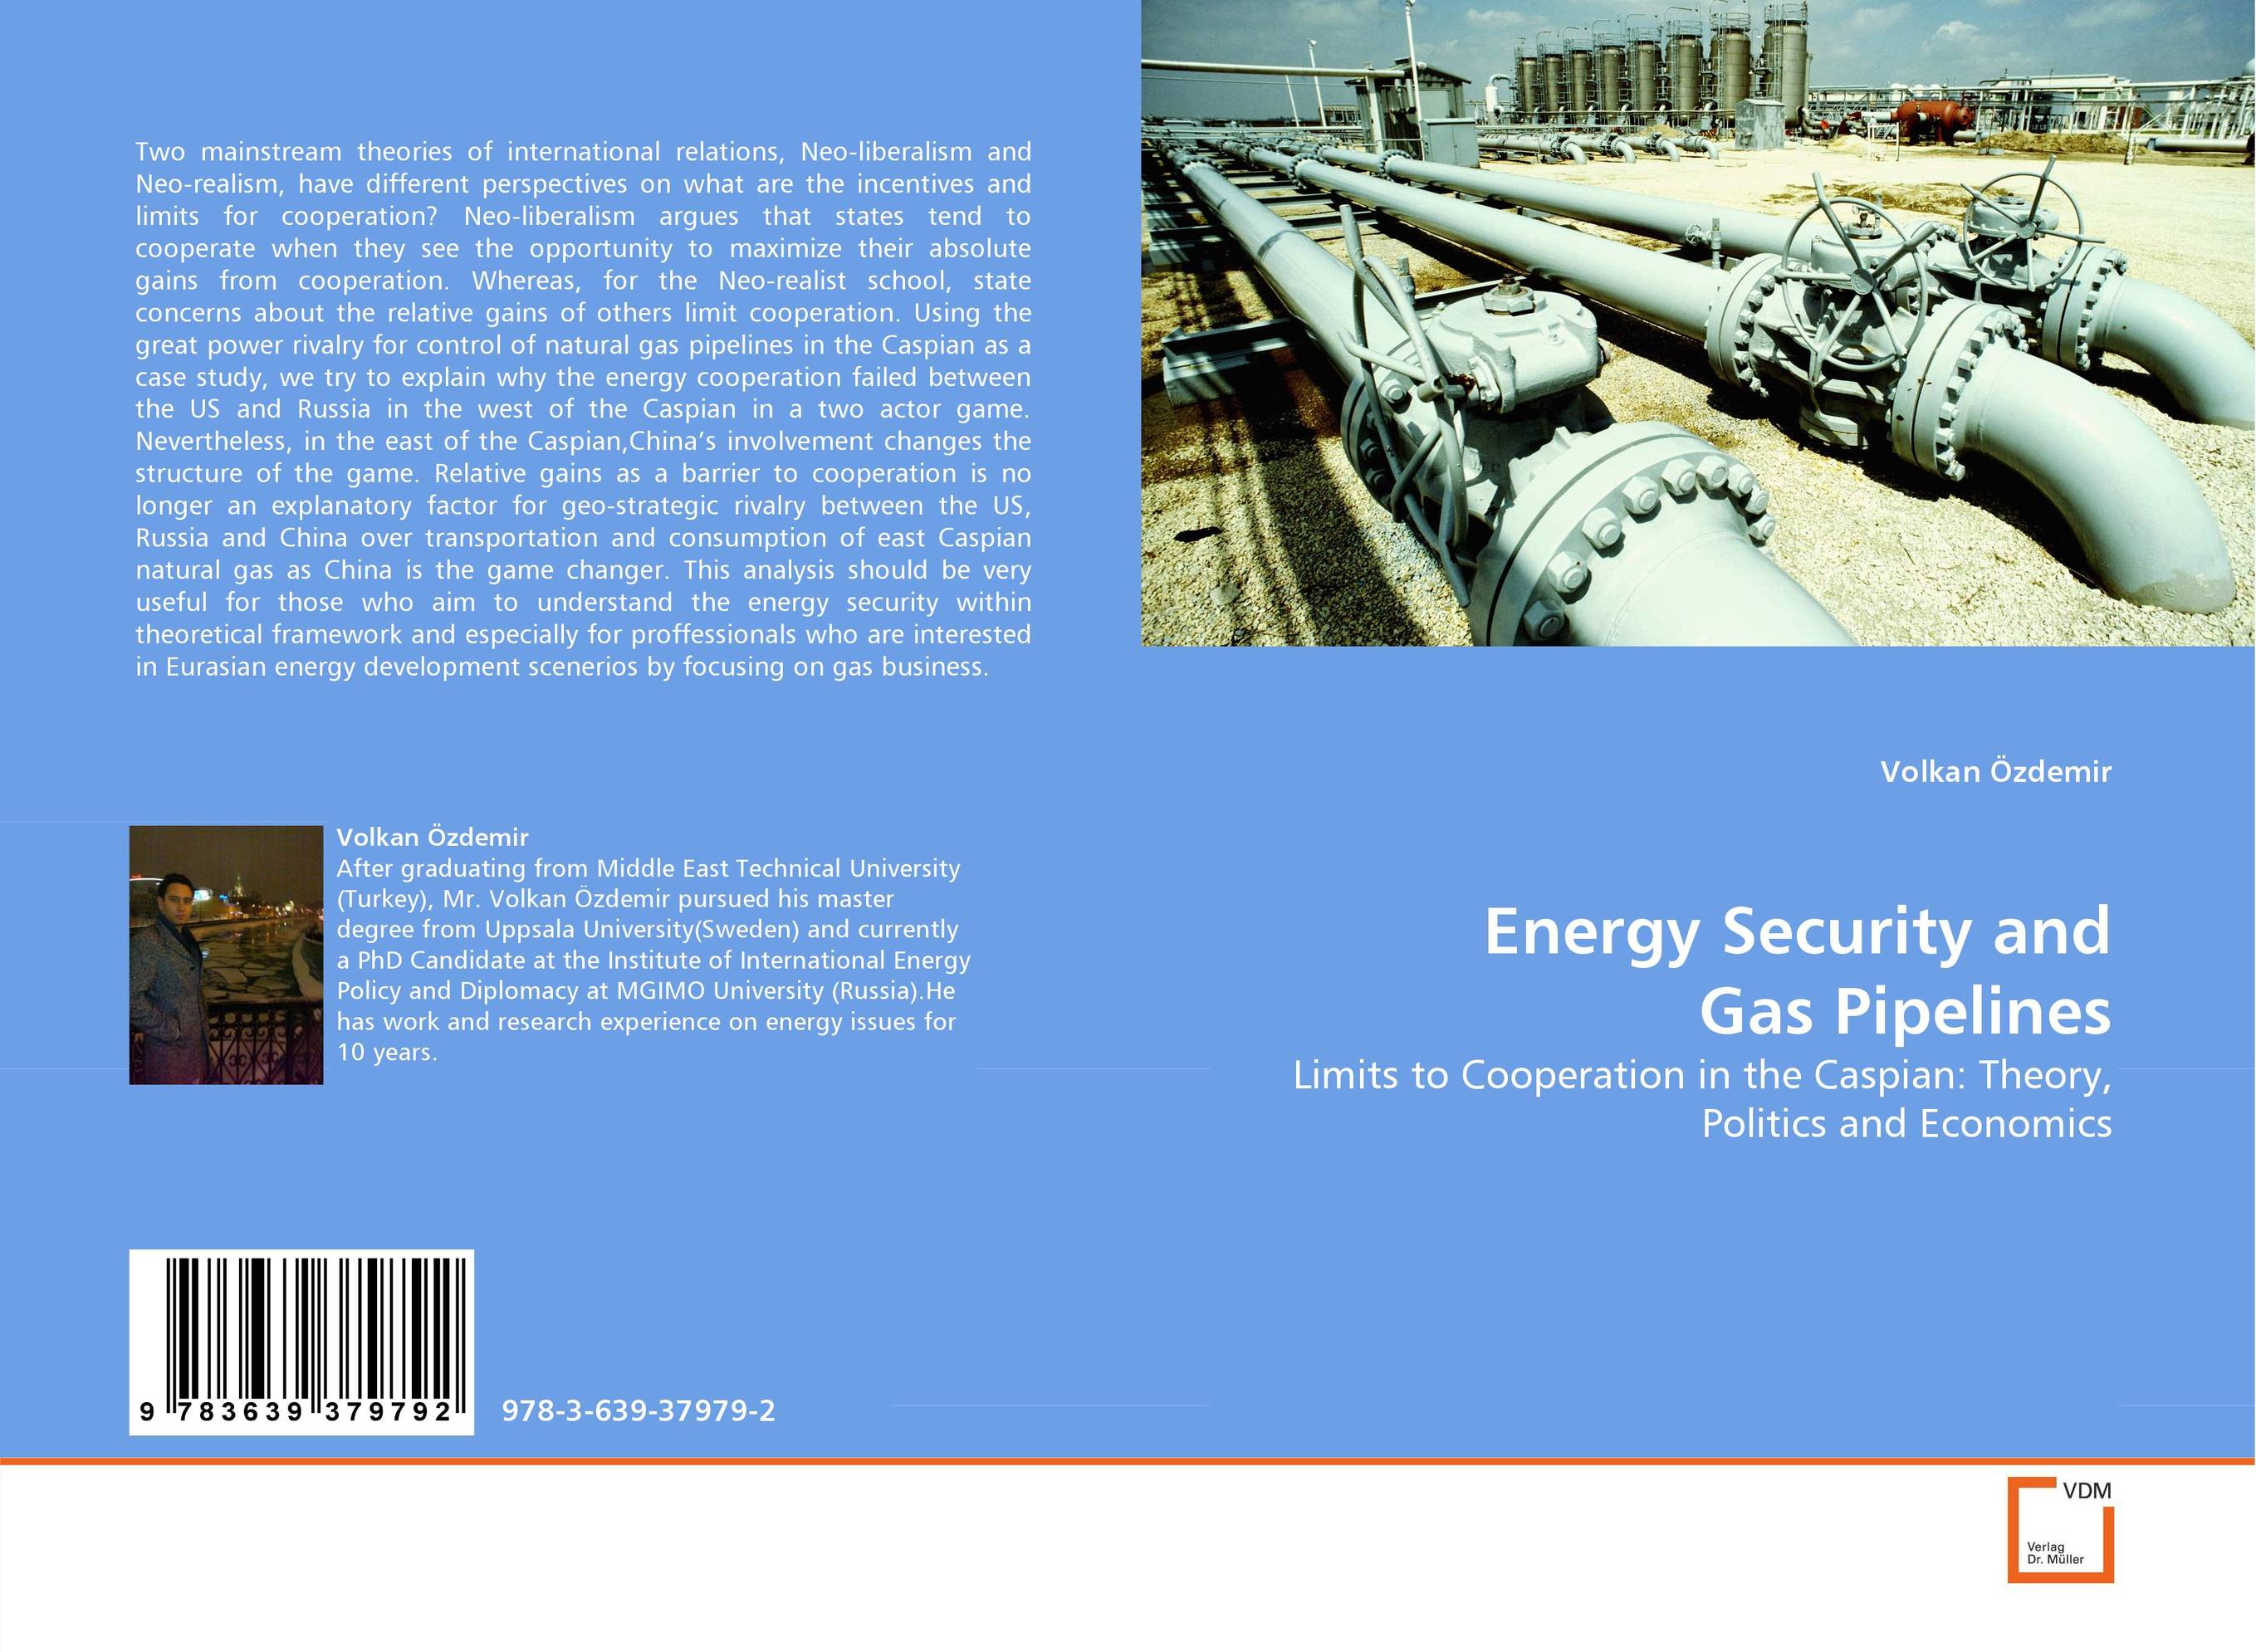 Energy Security and Gas Pipelines